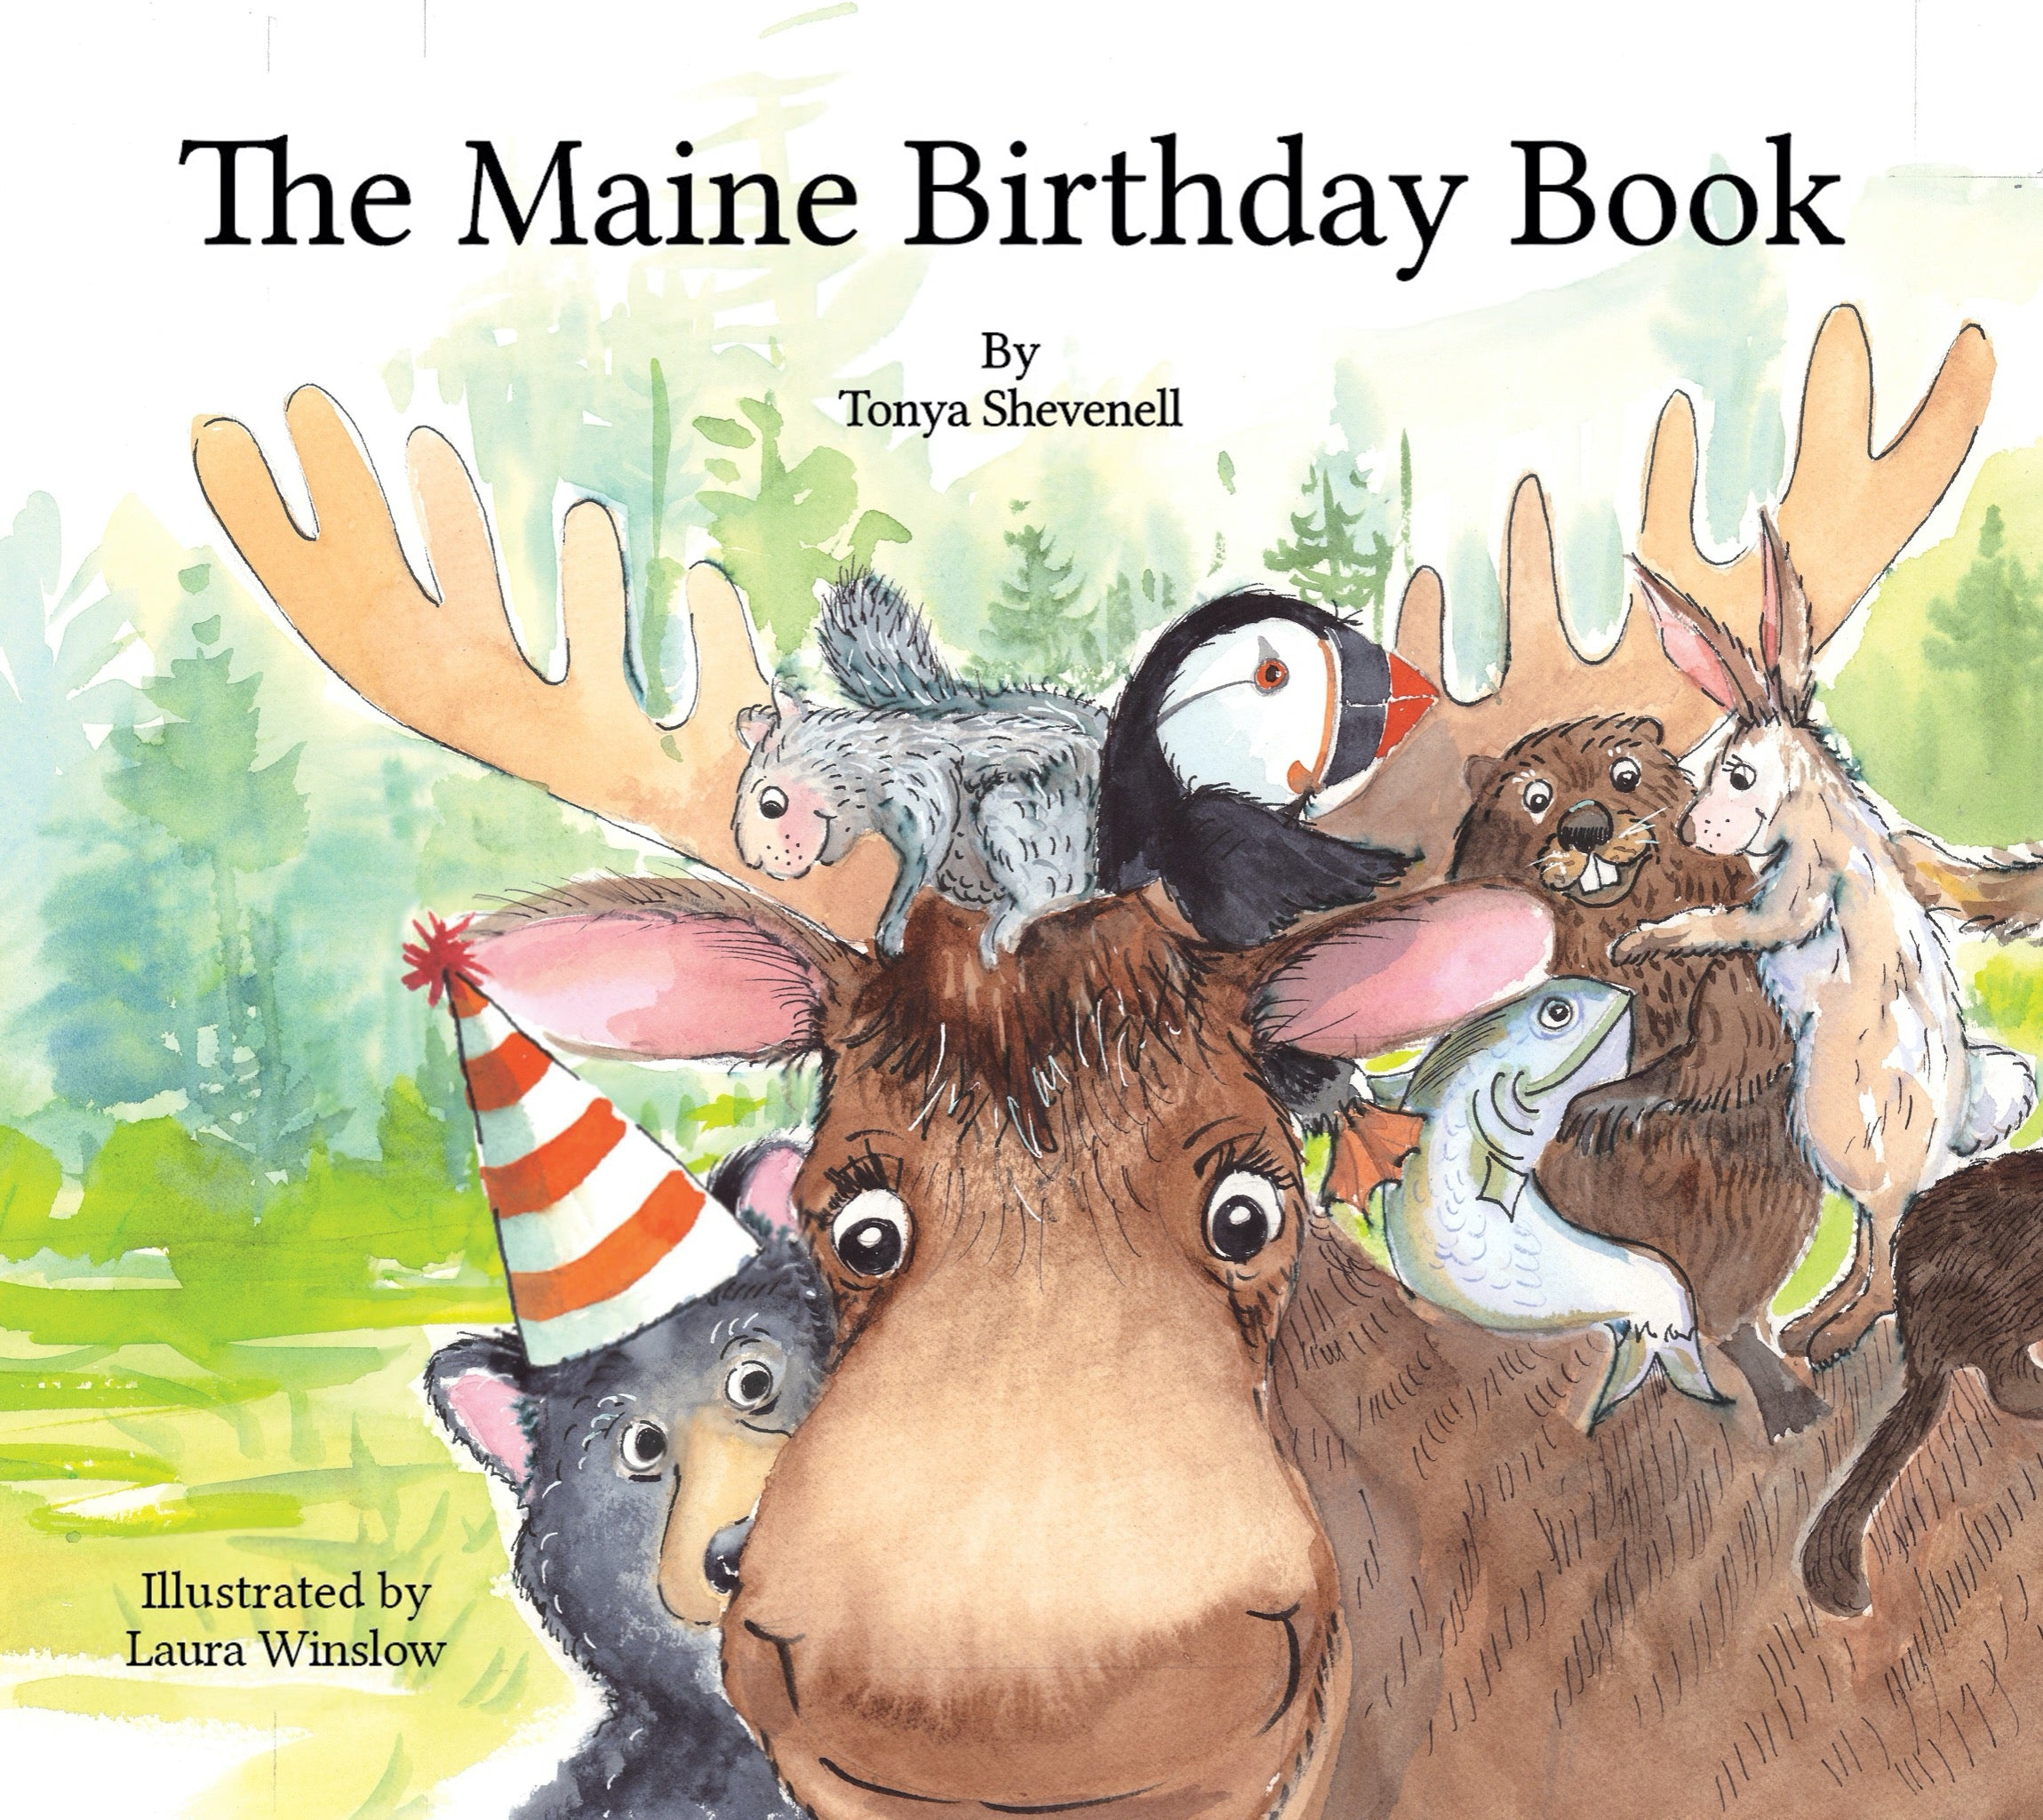 WINTER SPECIAL! A 4-Book Bundle of The Maine Birthday Book